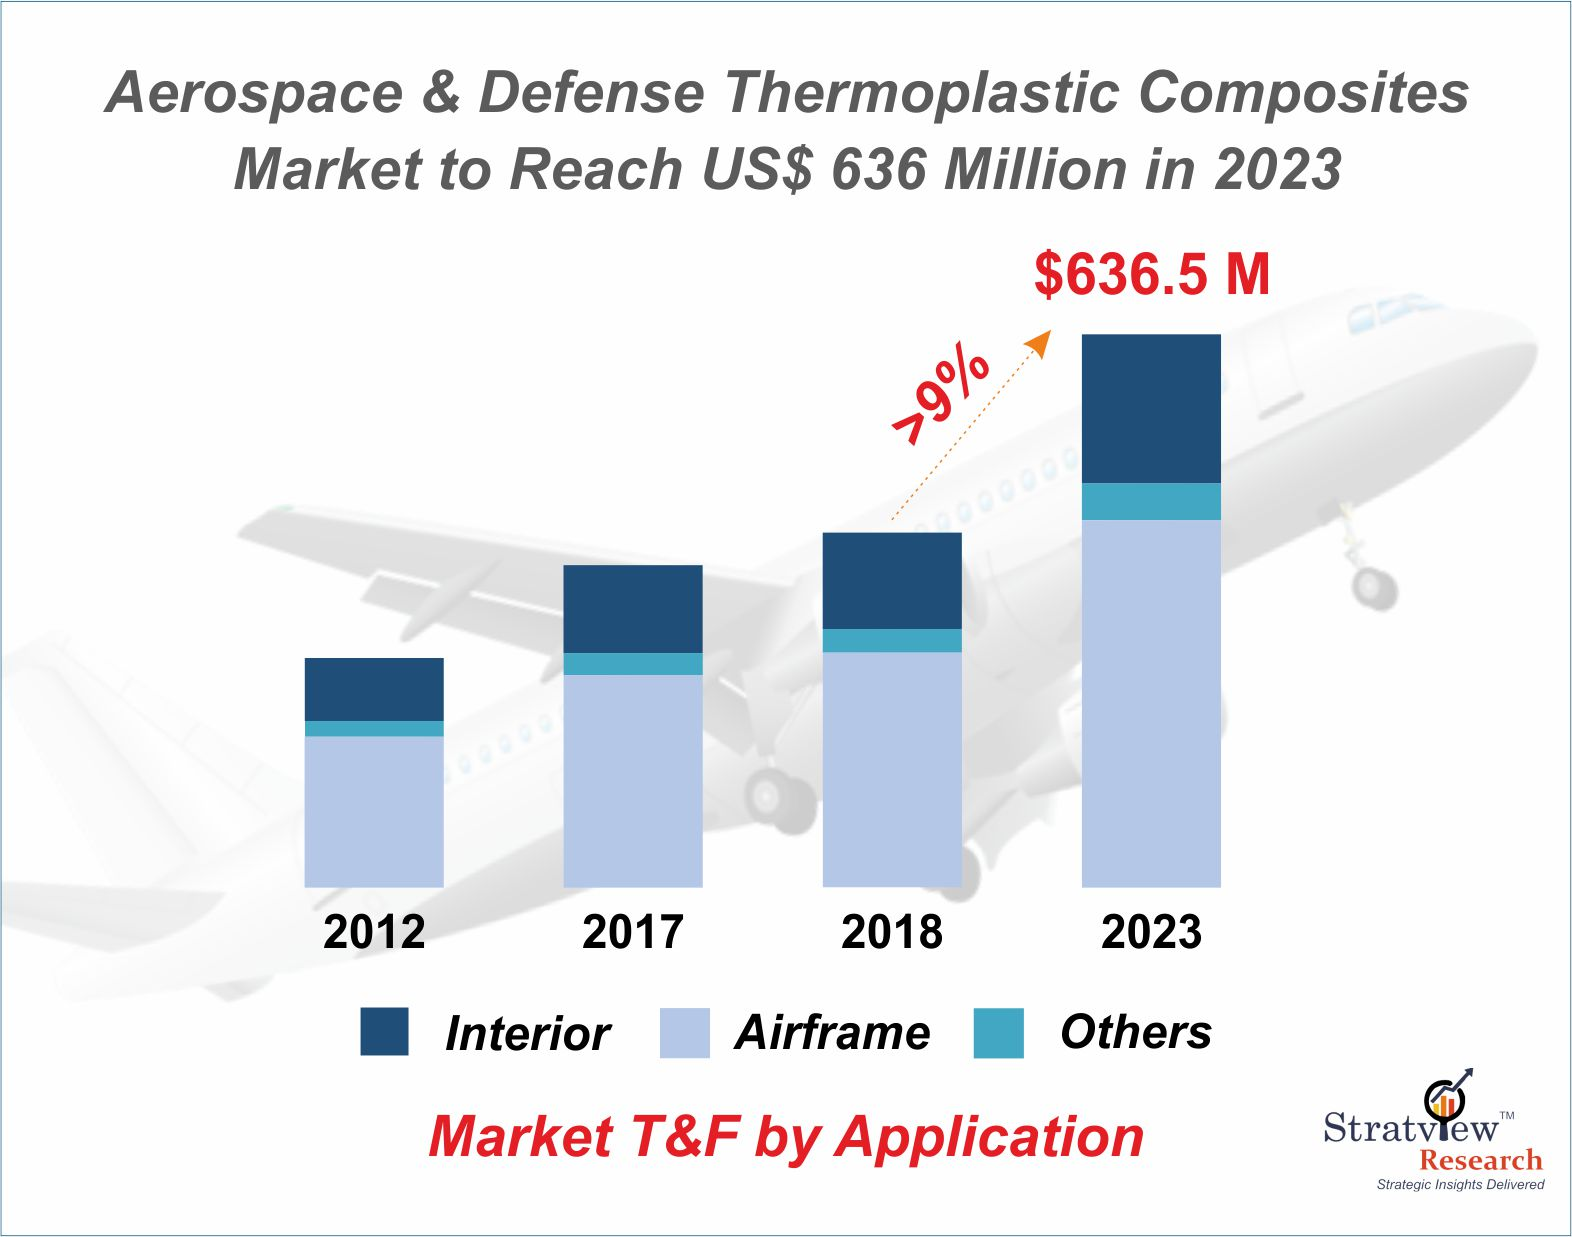 Sprouting growth of Thermoplastic Composites in Aerospace